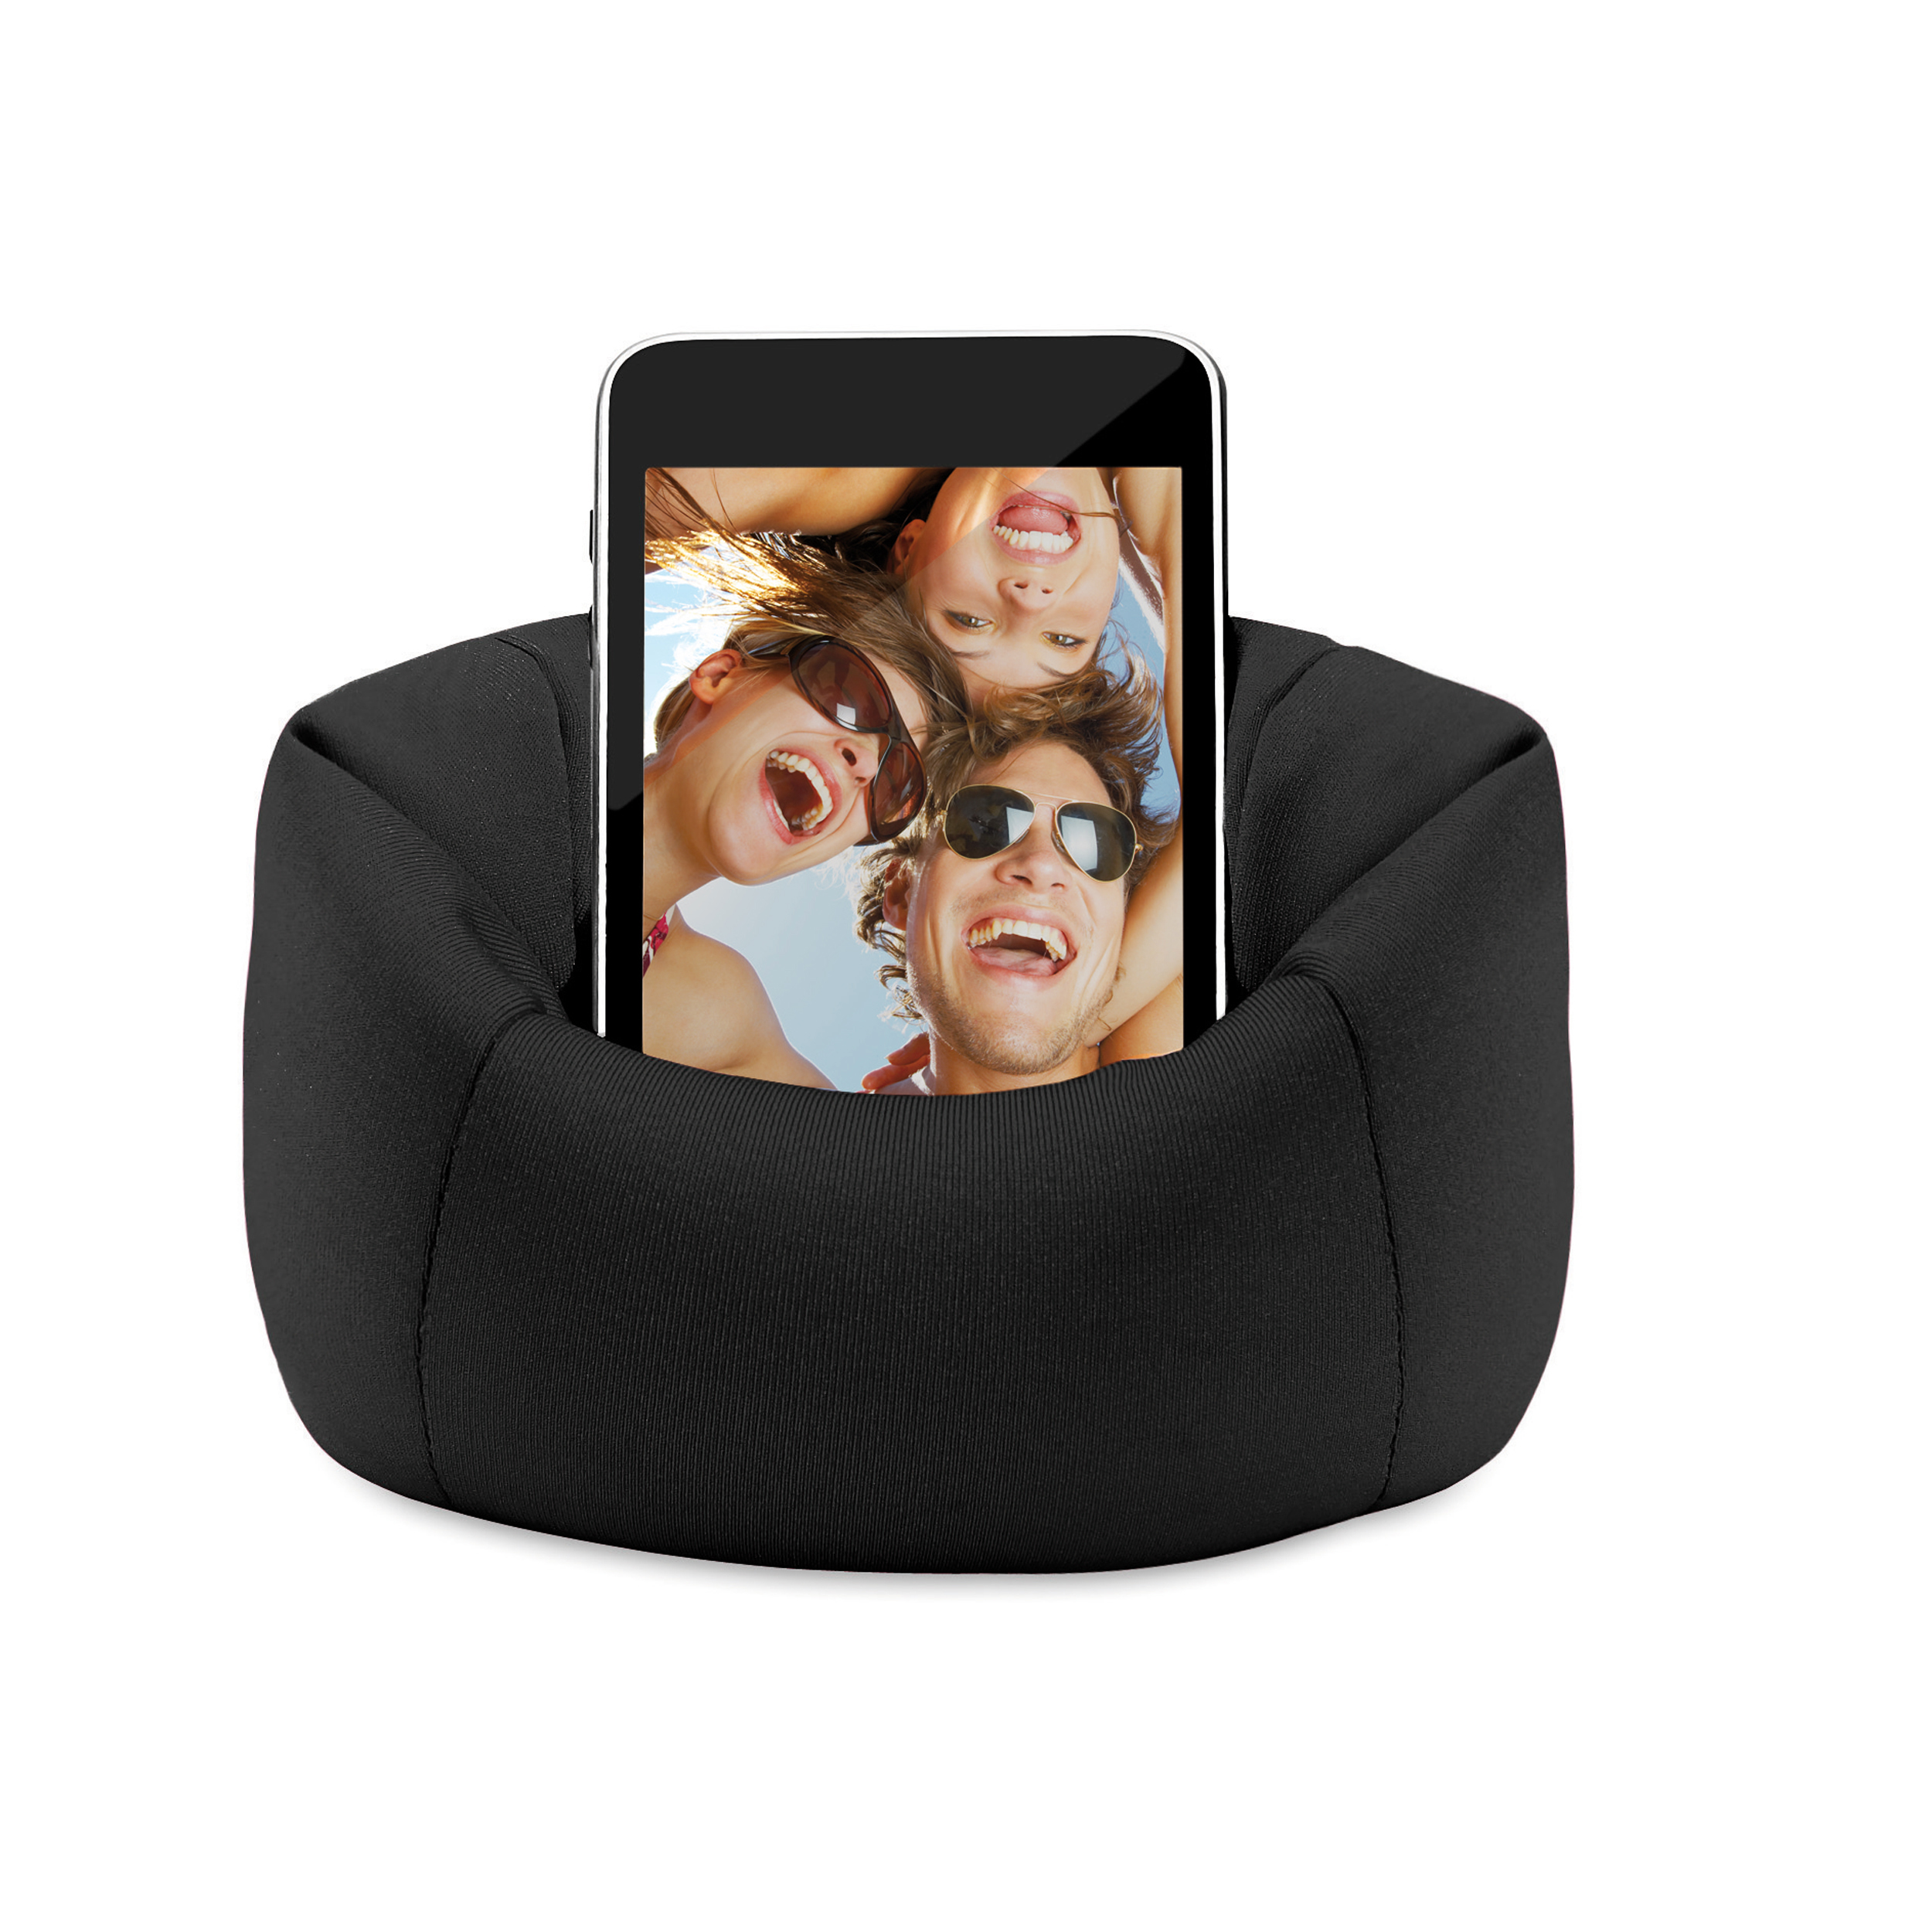 Handy Sessel Bean Bag Chair Sofa Holds Mobile Phone Up To 5 Quot Screens